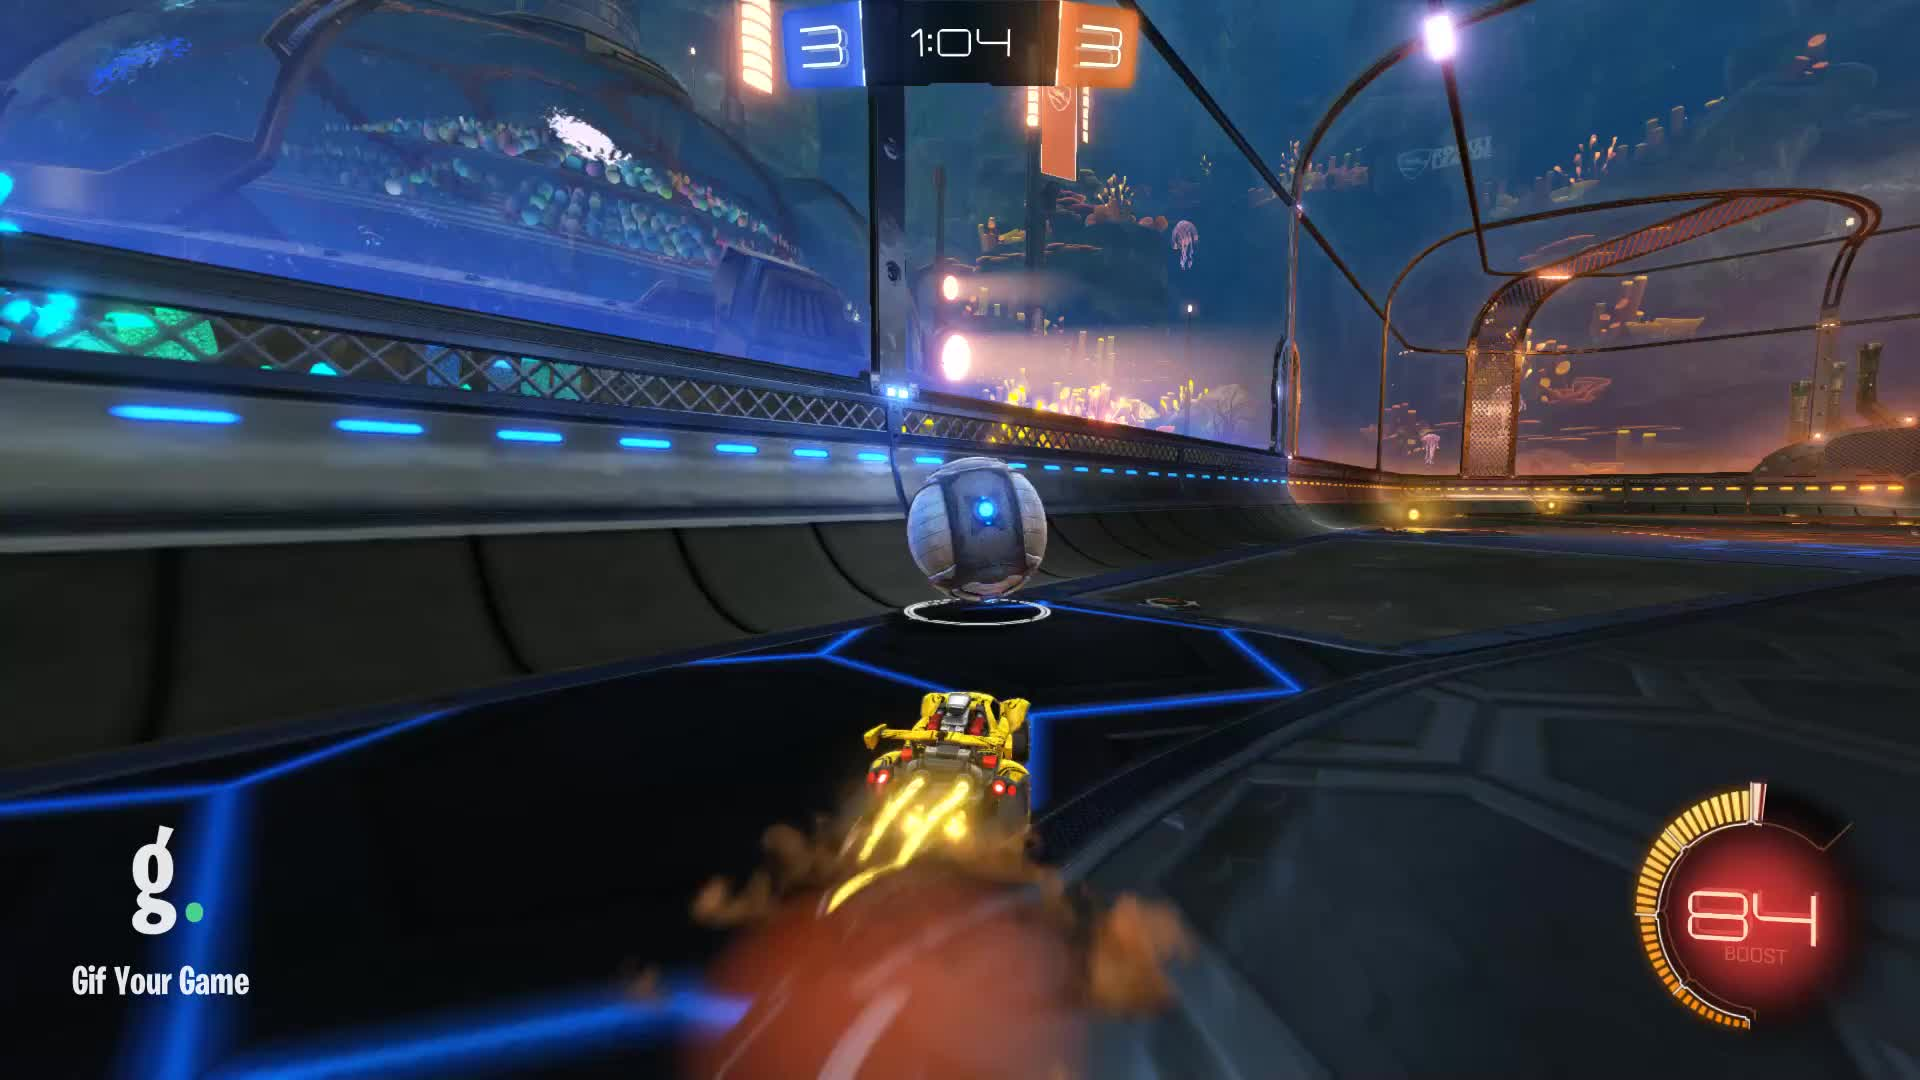 Champ at heart Plat to start, Gif Your Game, GifYourGame, Goal, Rocket League, RocketLeague, Goal 7: Champ at heart Plat to start GIFs